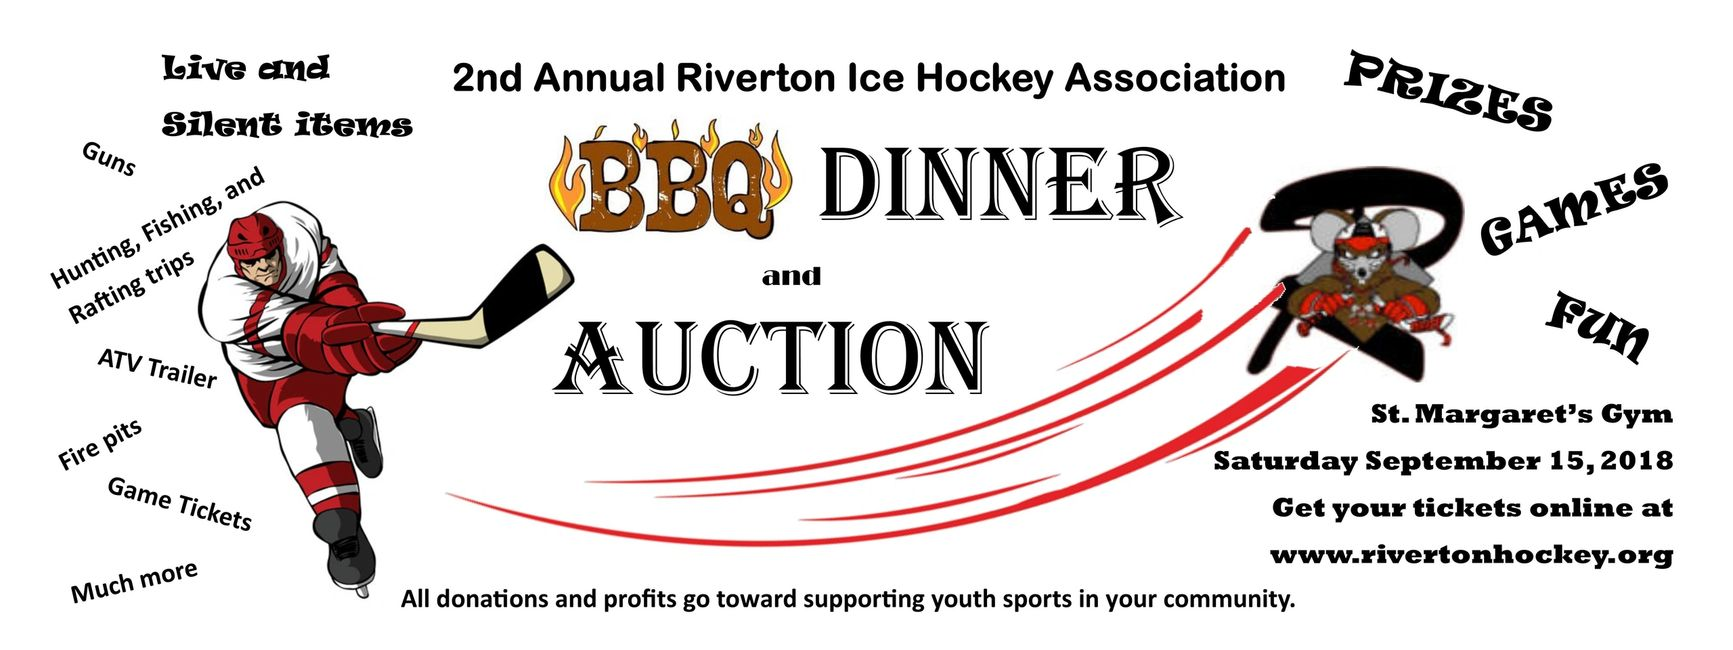 Second Annual Riverton Ice Hockey Association BBQ Dinner and Auction